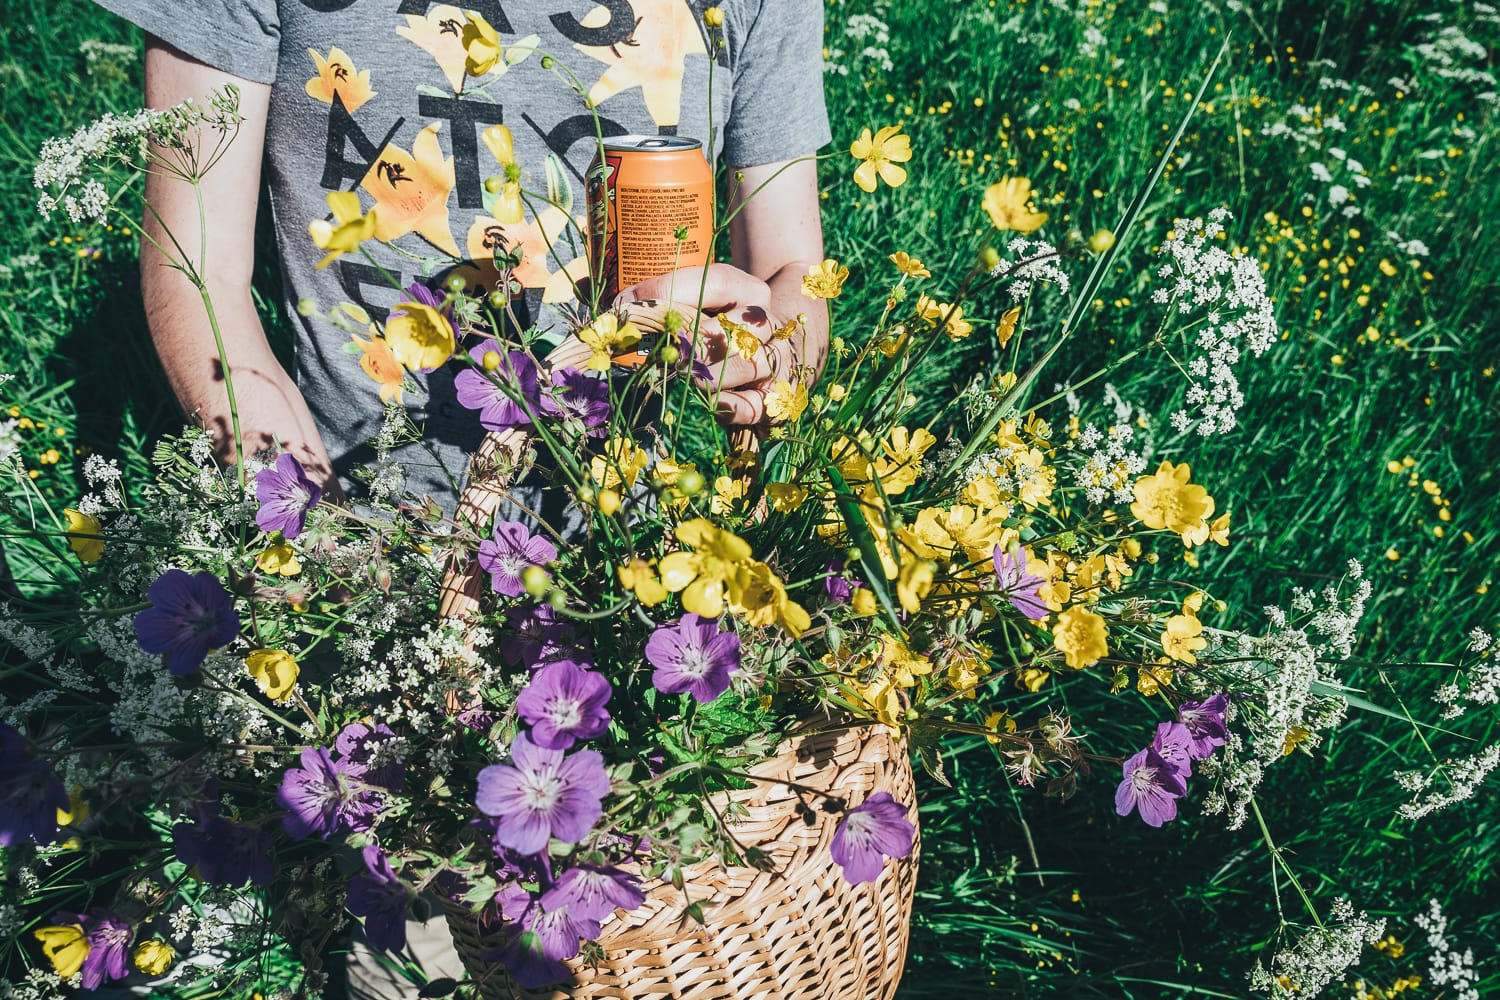 picking flowers and drinking beer